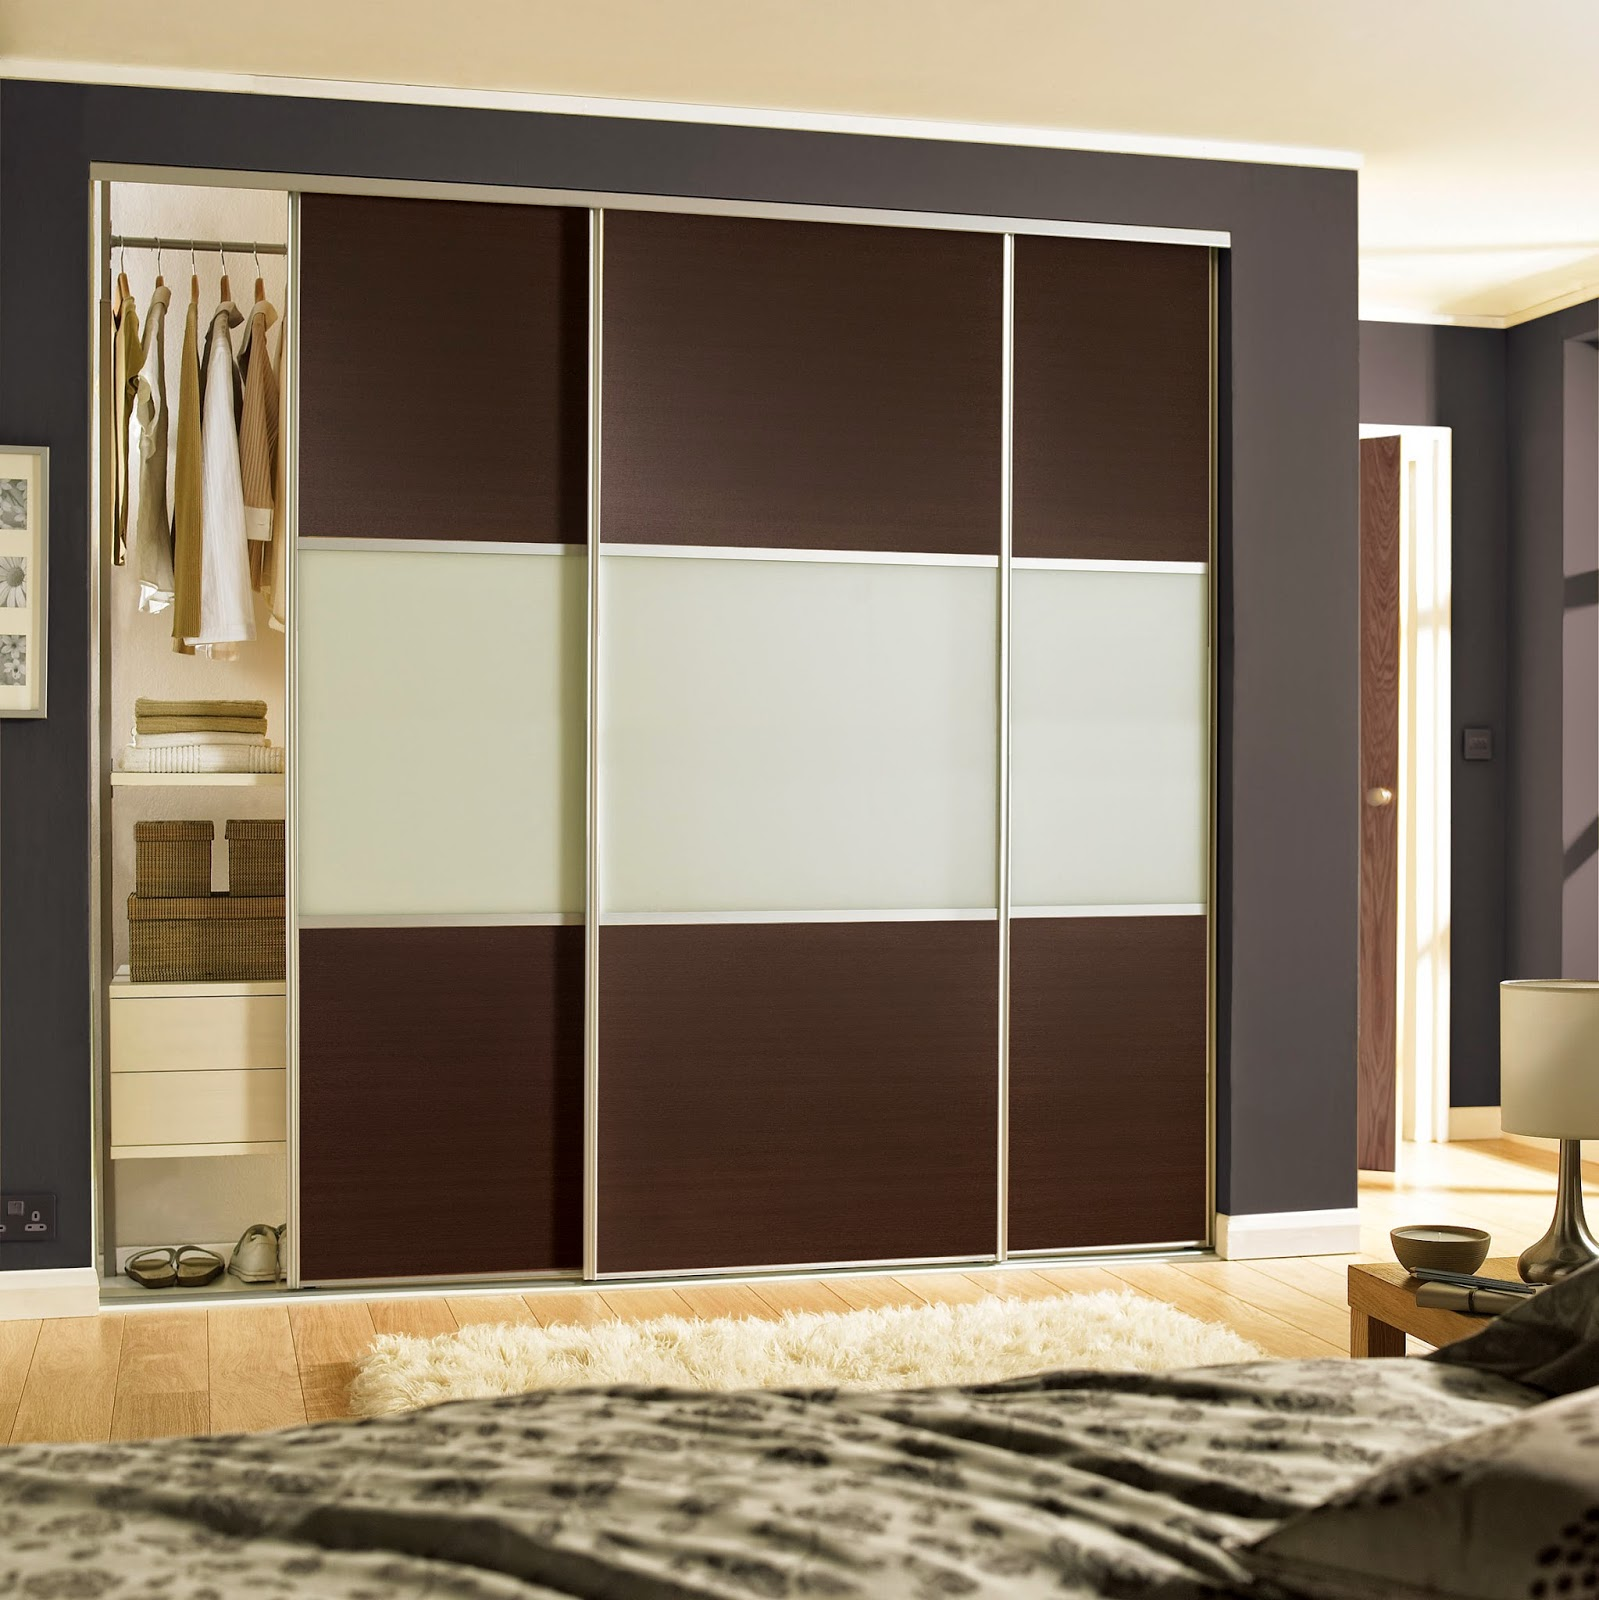 Bedrooms plus sliding wardrobe doors and fittings how to for Built in sliding doors